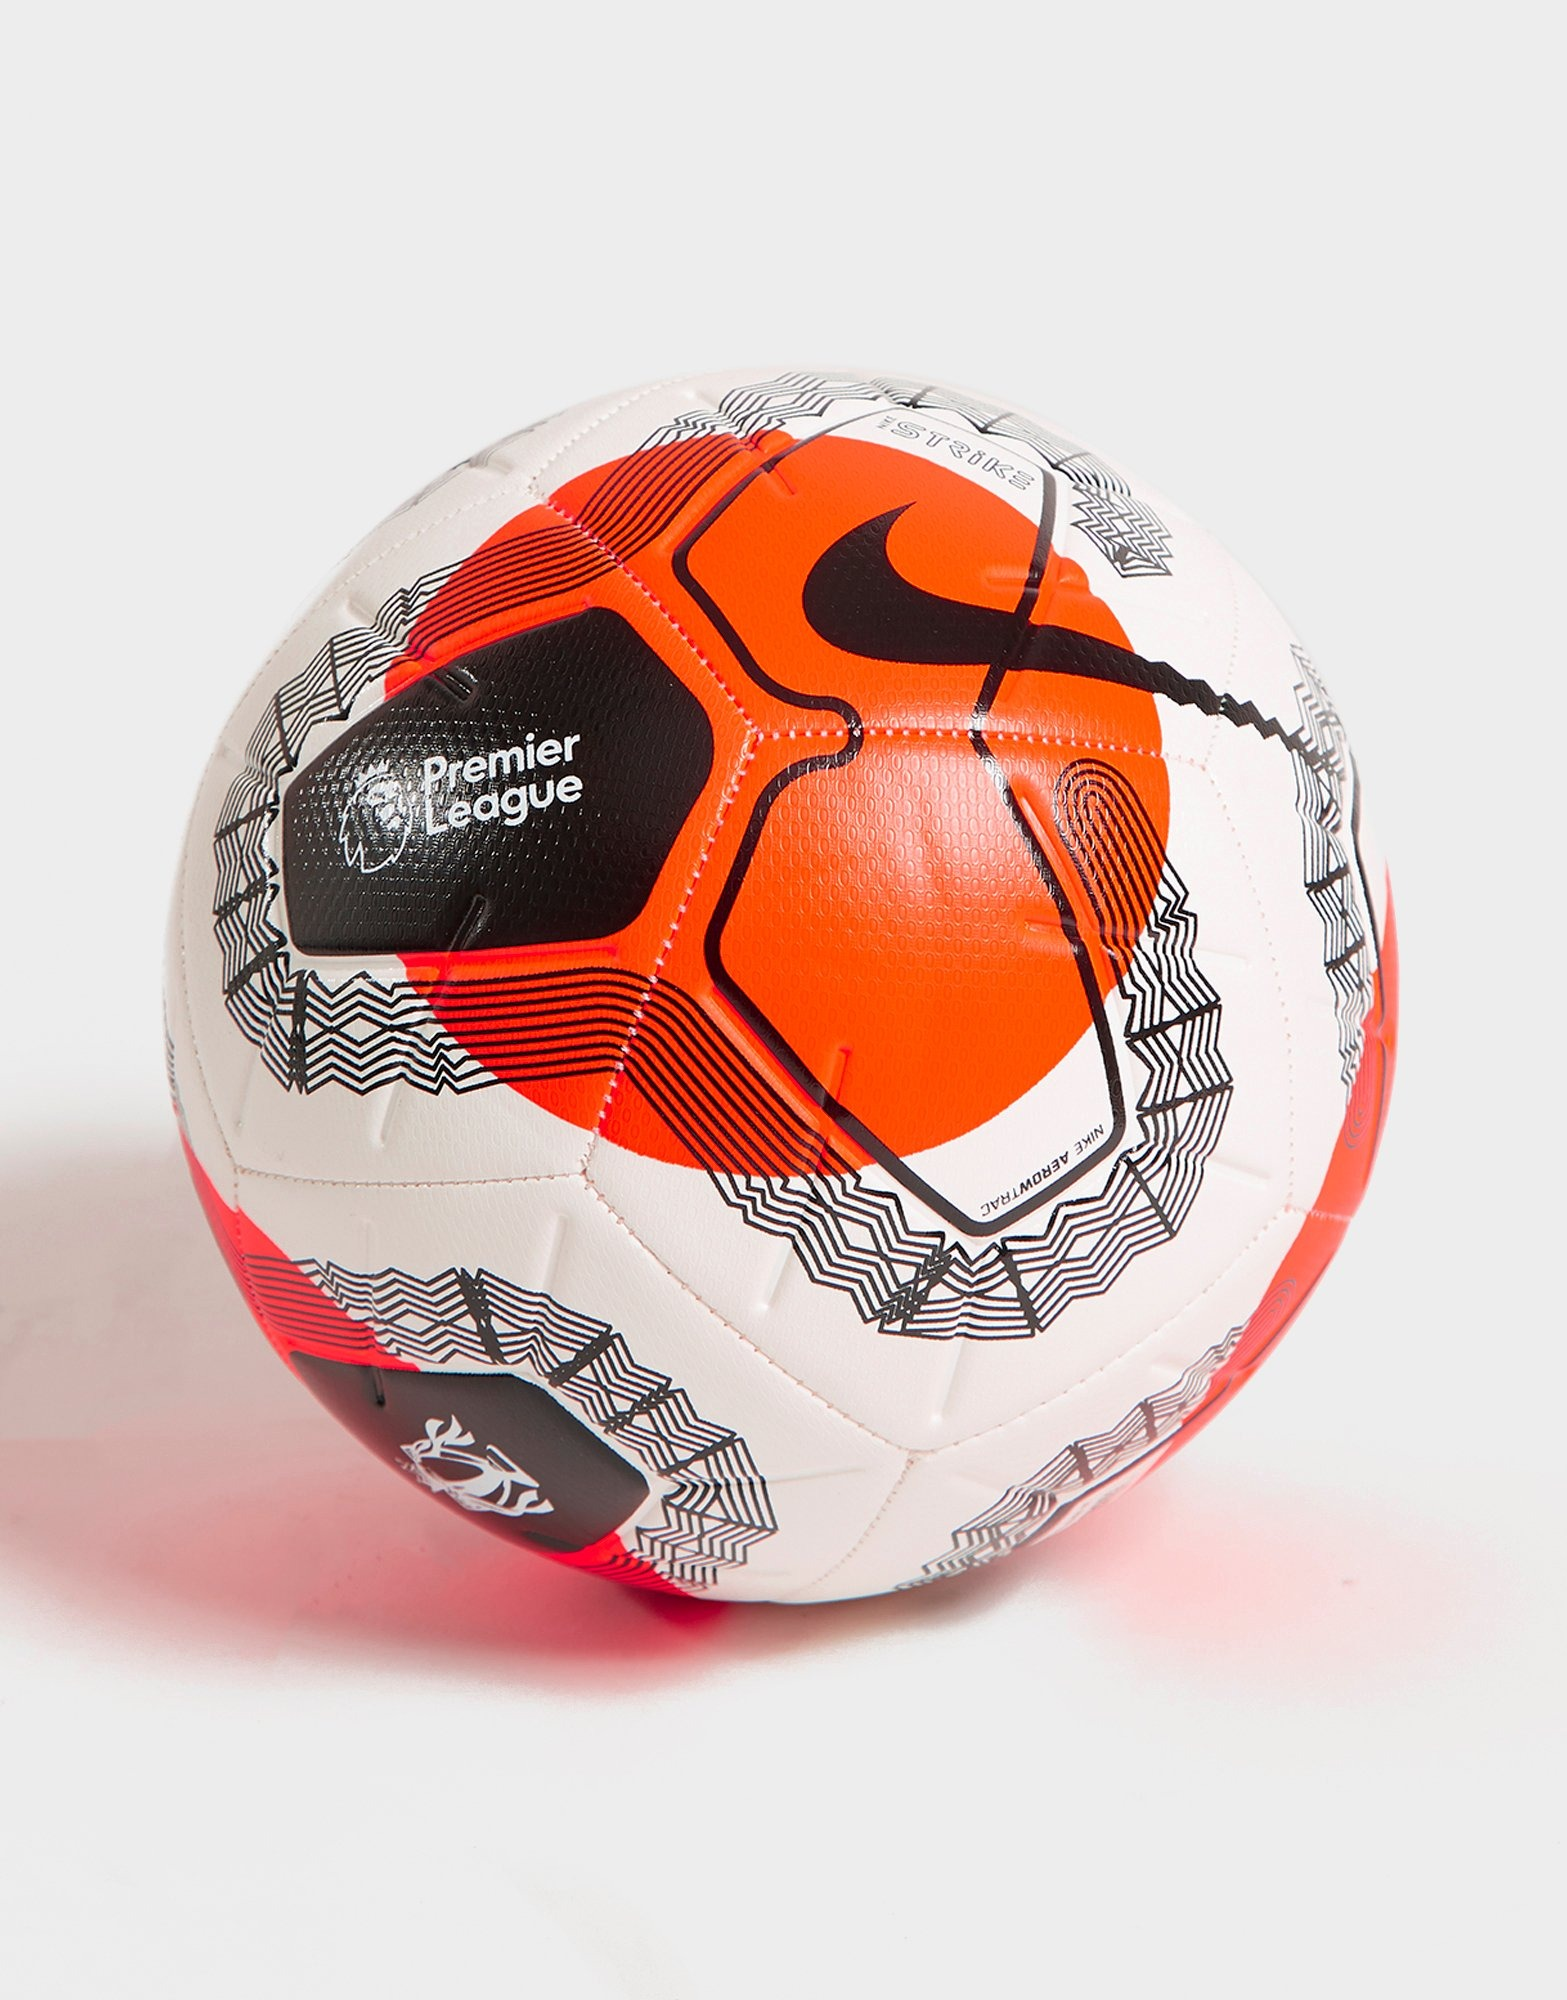 hammer Legend Feudal  Buy Nike Premier League 2019/20 Strike Football (Size 5) | JD Sports